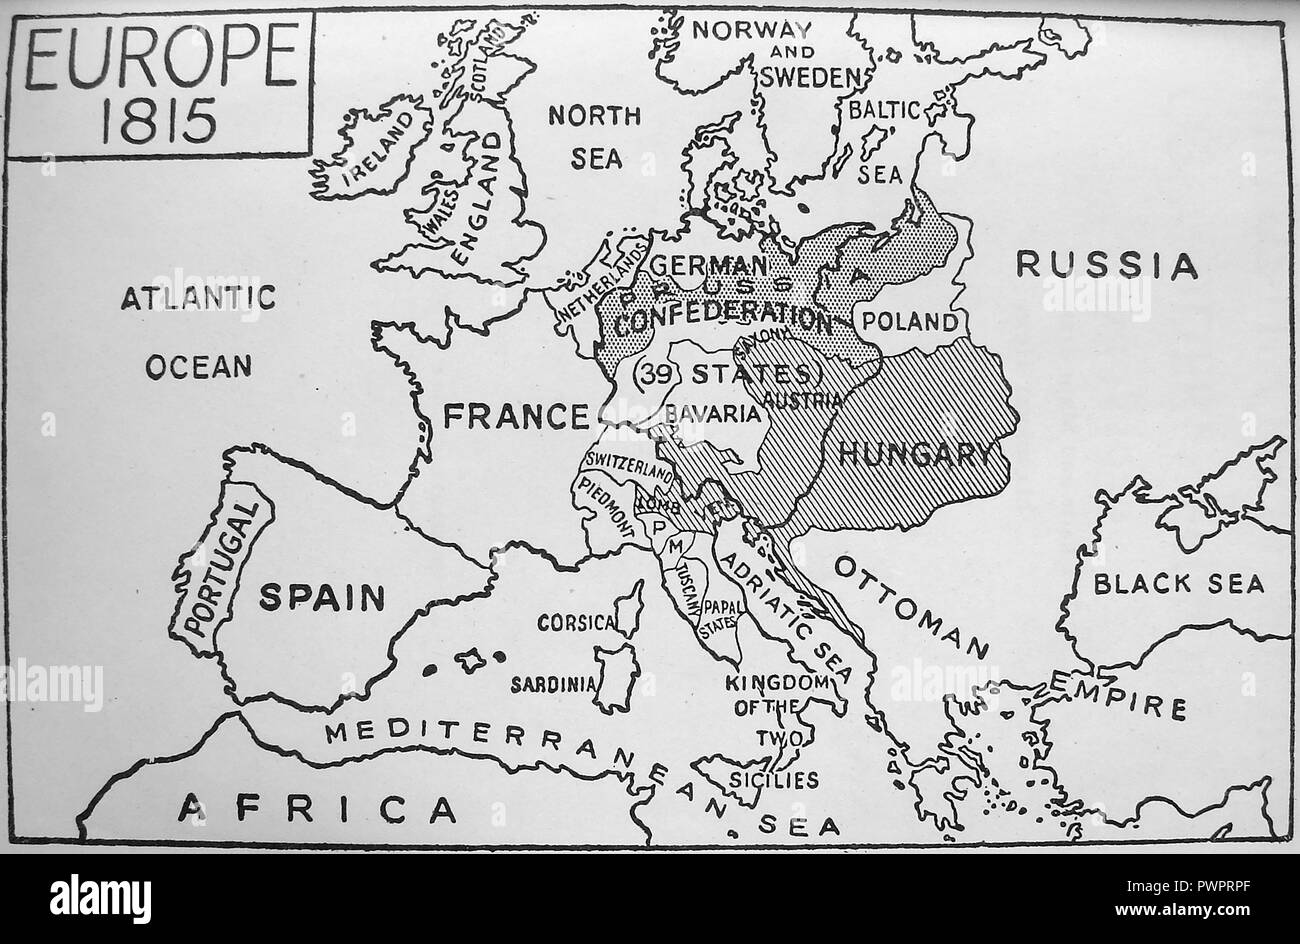 An early printed map of Europe in 1815 Stock Photo: 222392423 - Alamy